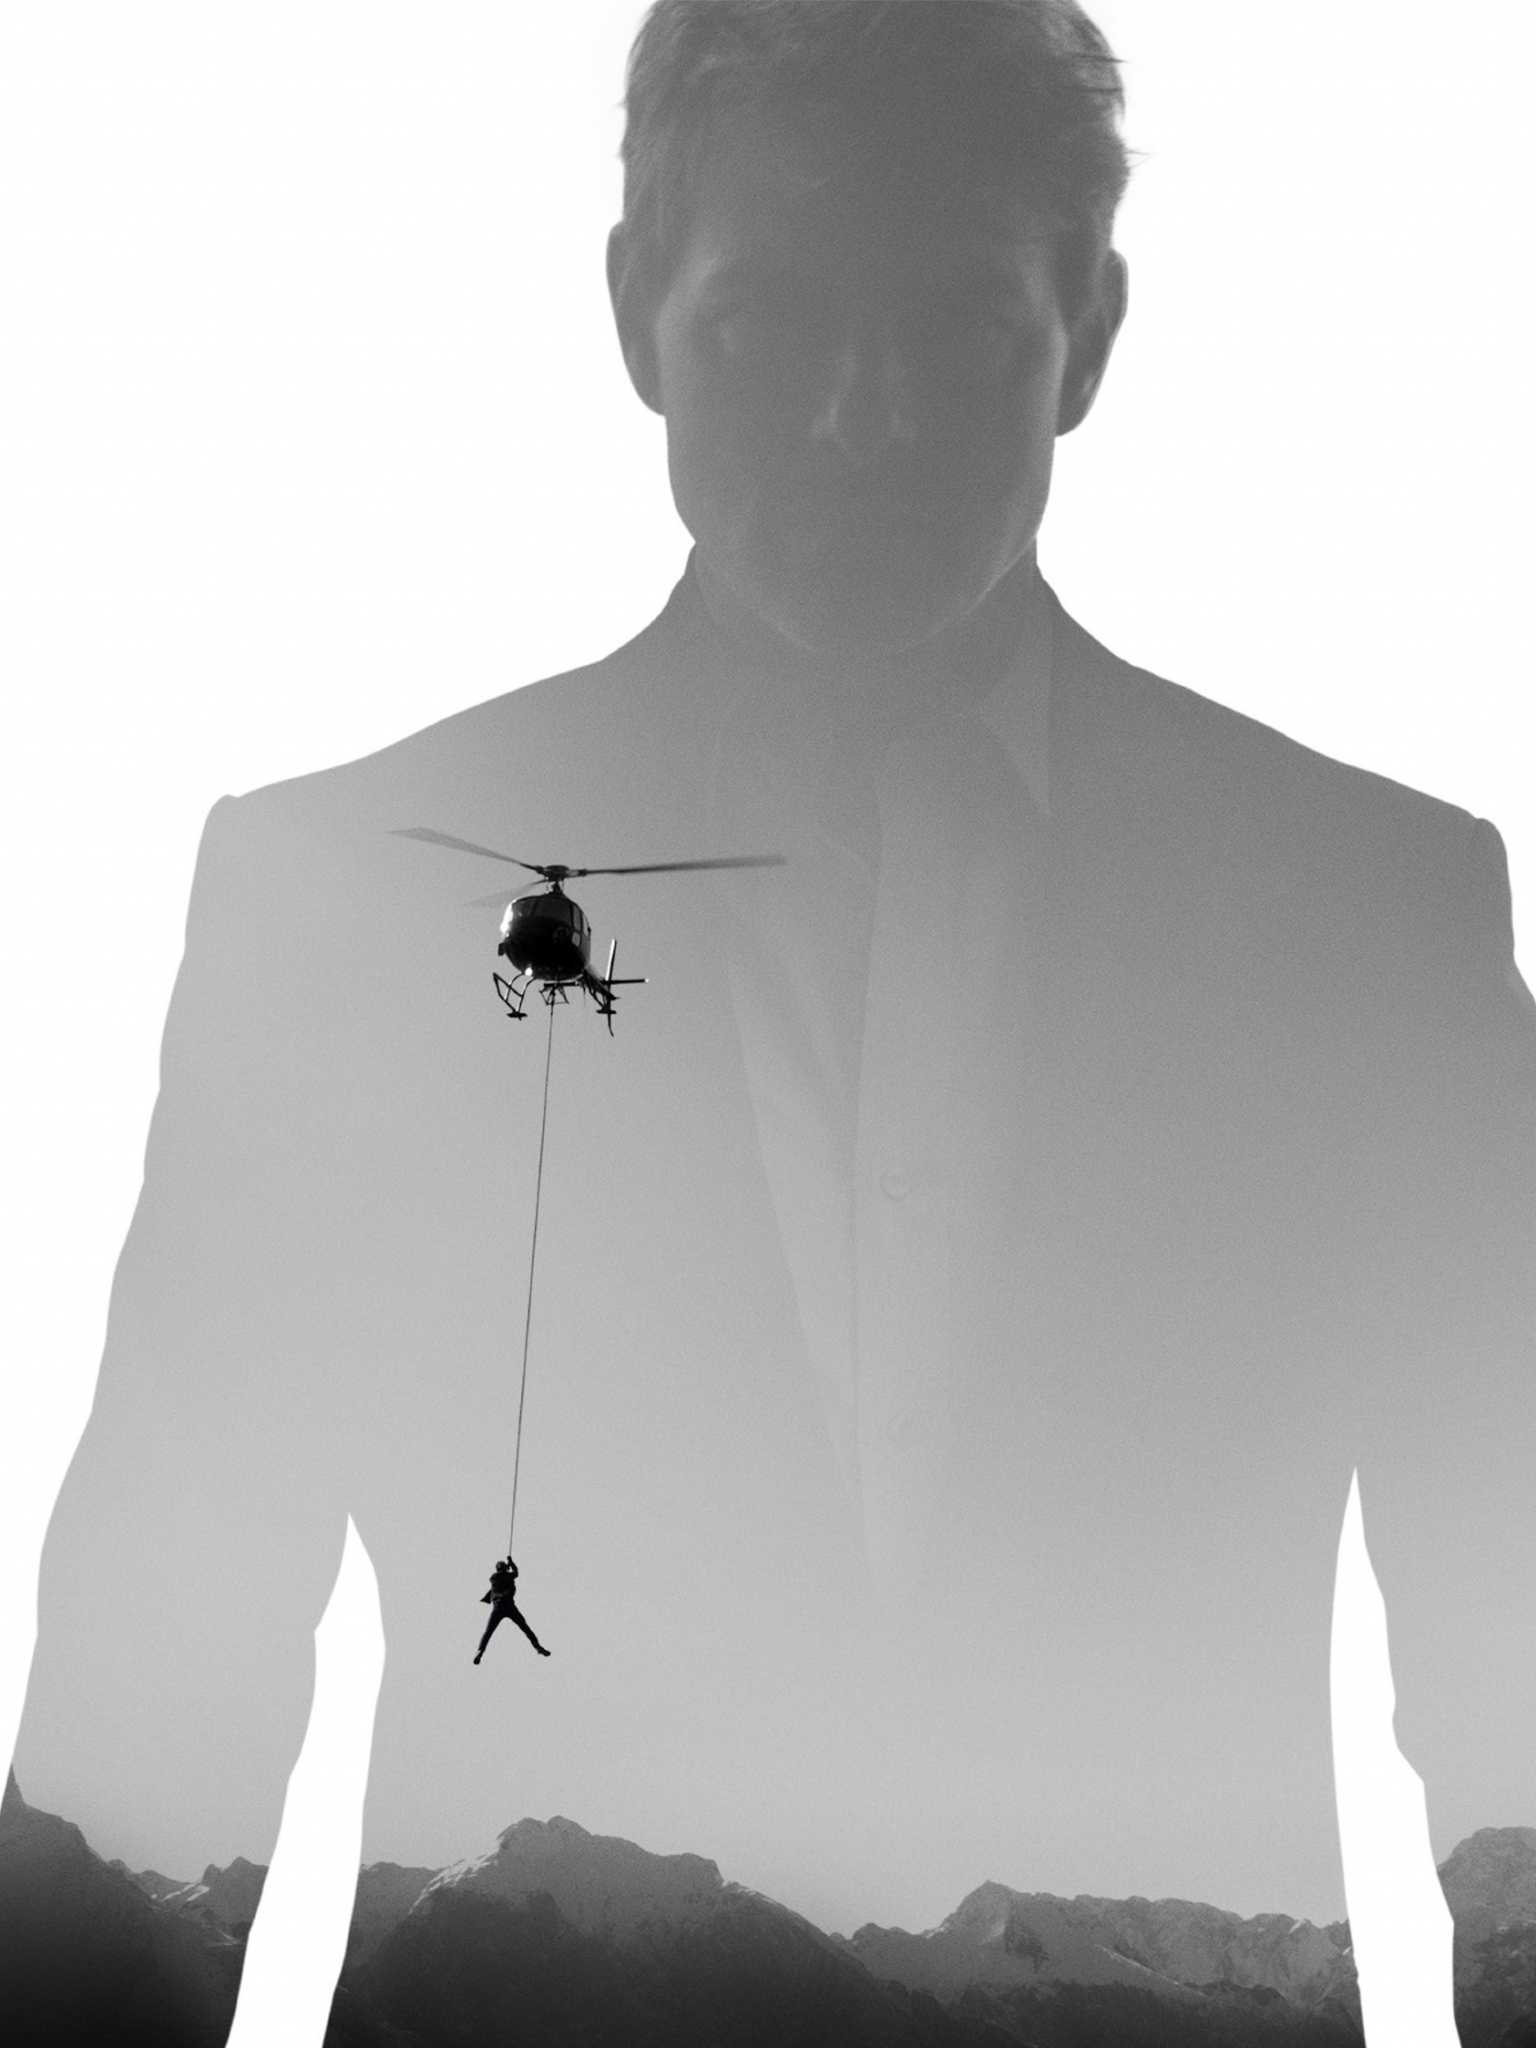 Free Download 2248x2248 Mission Impossible Fallout 2018